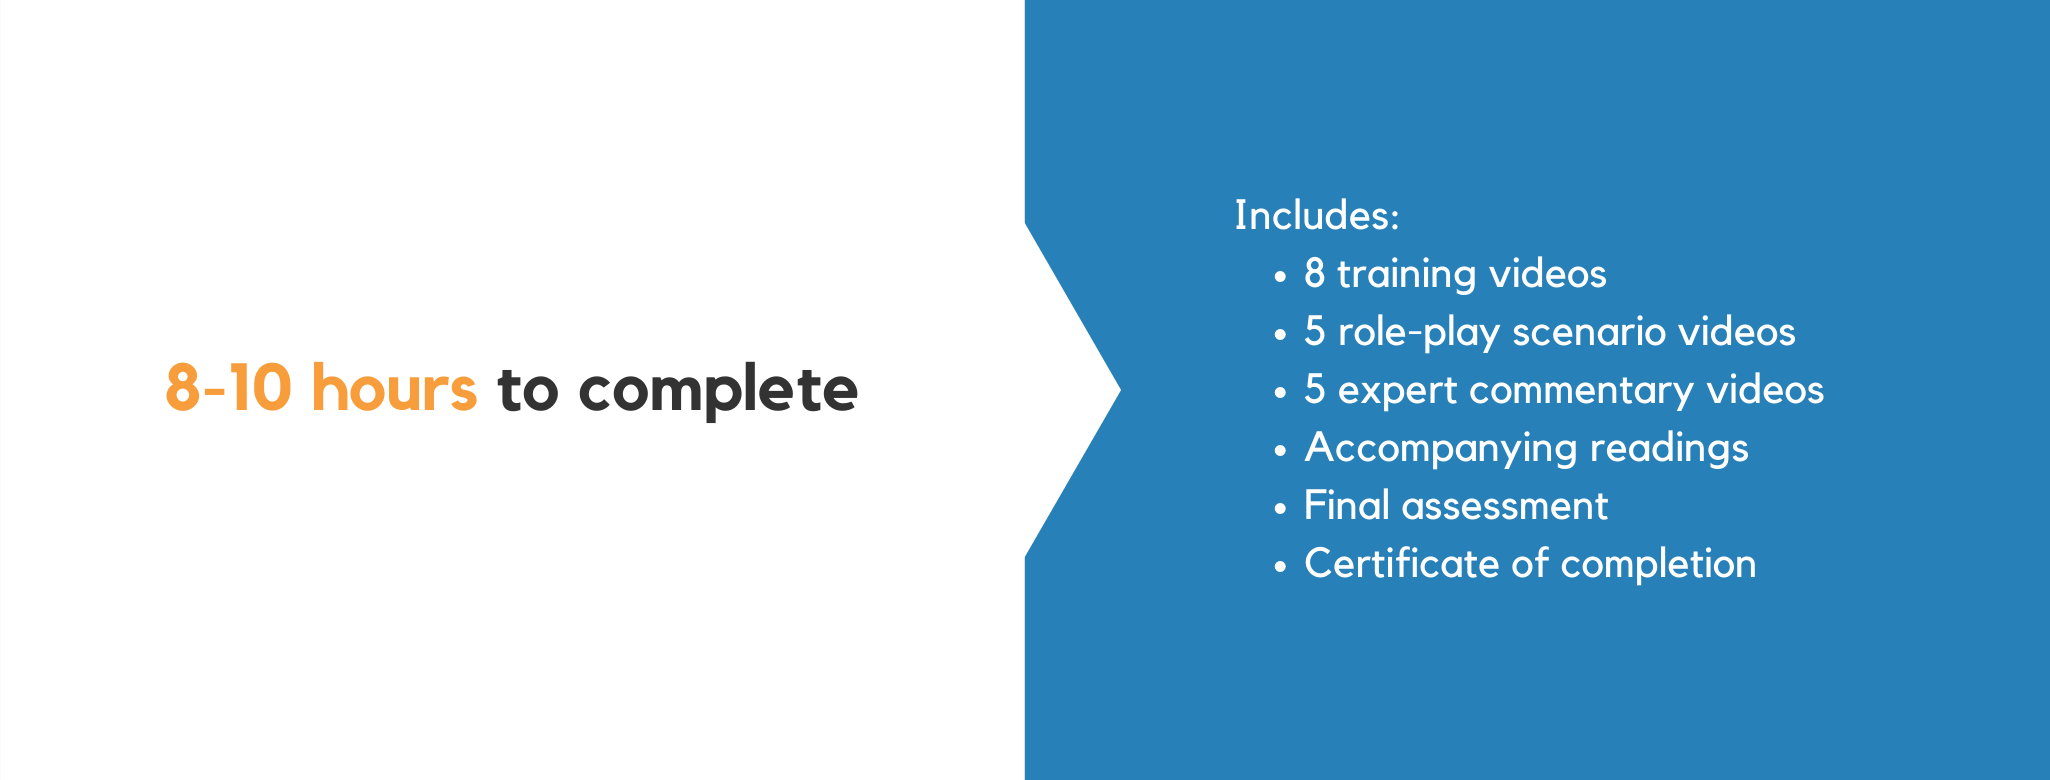 8-10 hours to complete. Includes: 8 training videos, 5 role-play scenario videos, 5 expert commentary videos, accompanying readings, final assessment, certificate of completion.